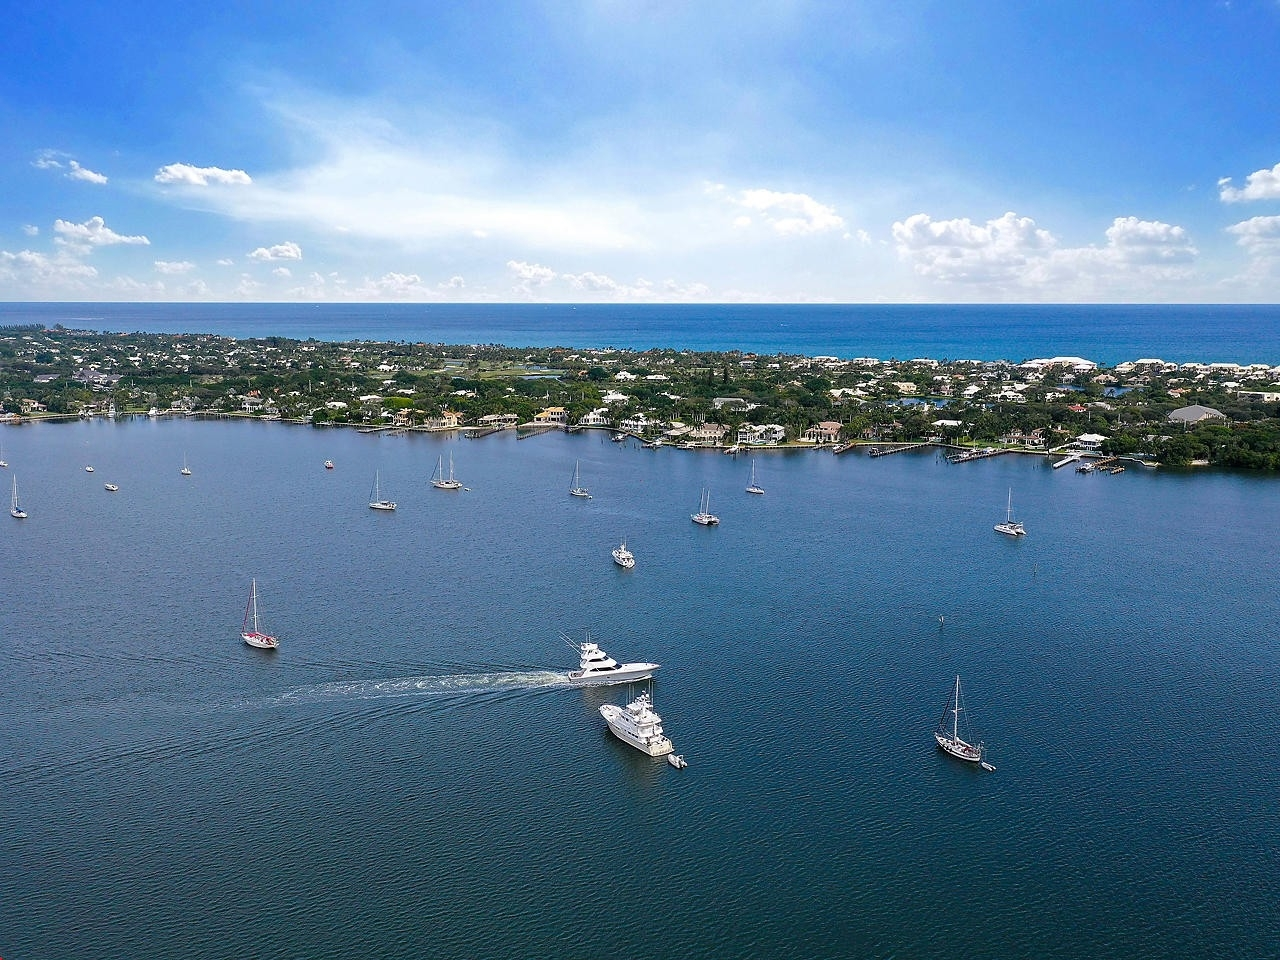 Property 在 126 Lakeshore Drive, 4260 Old Port Cove, North Palm Beach, FL 33408